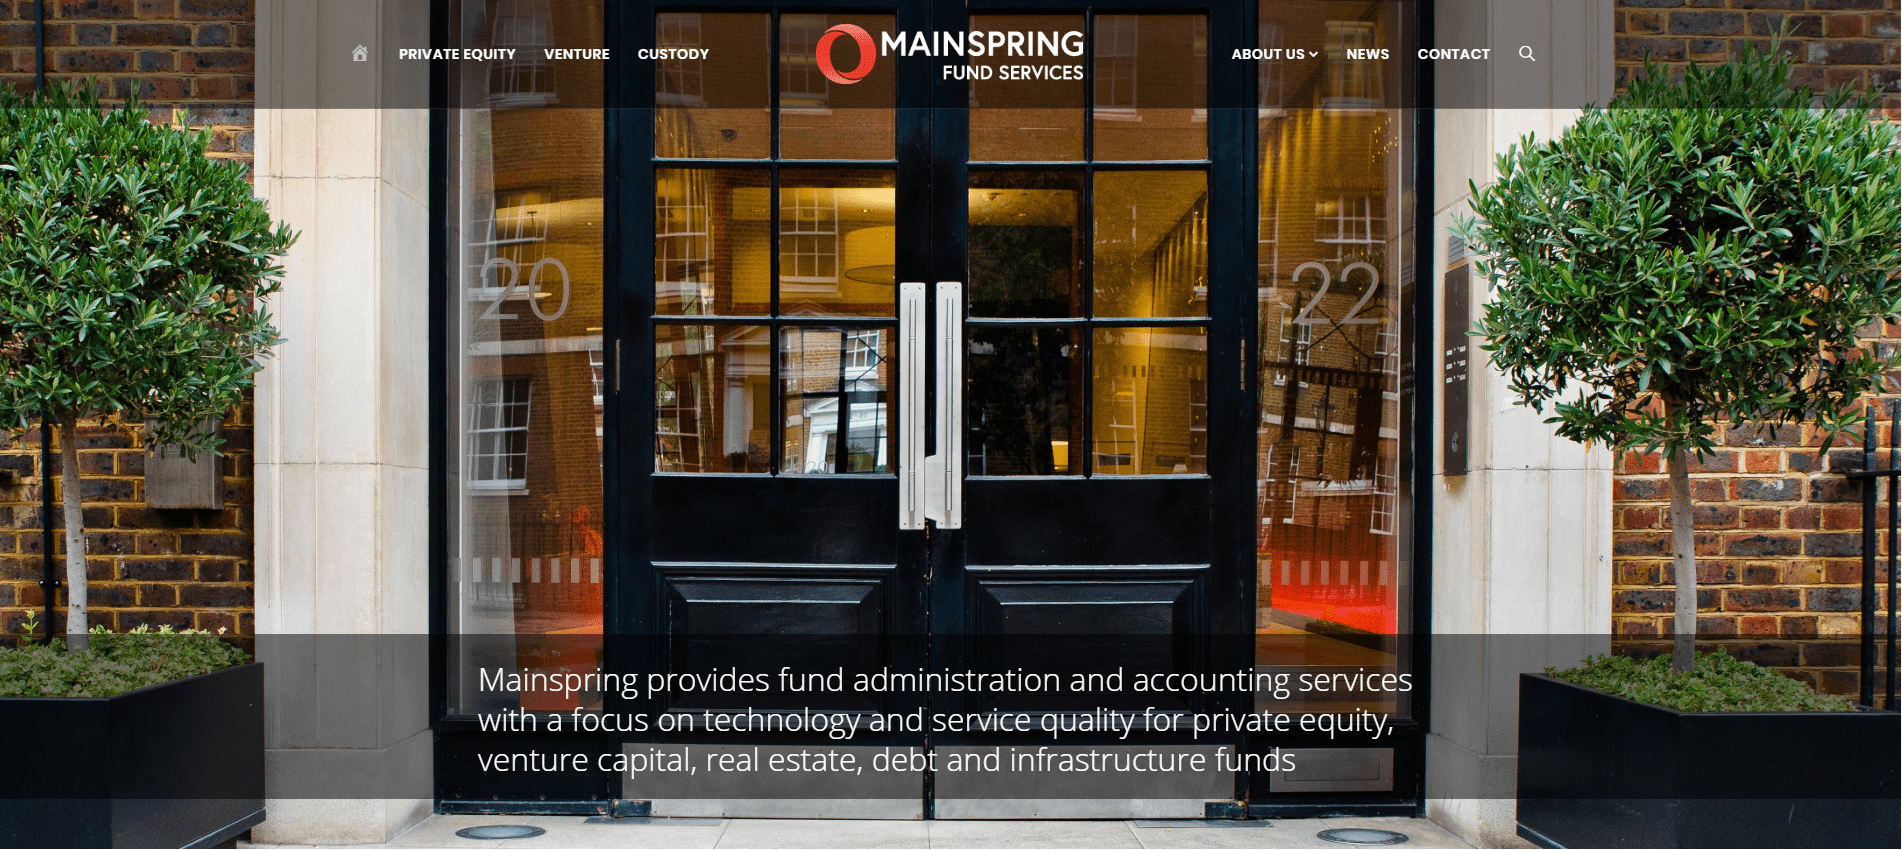 mainspring office doors